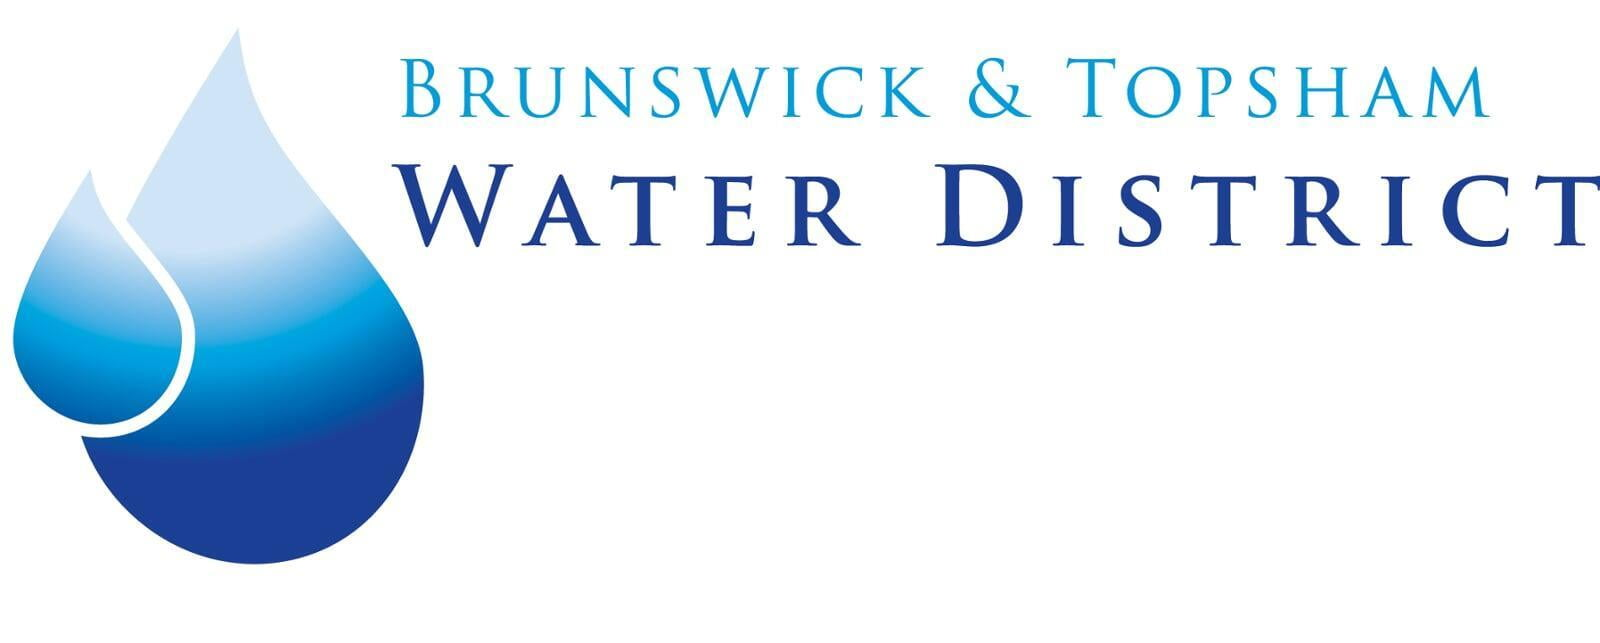 Brunswick & Topsham Water District